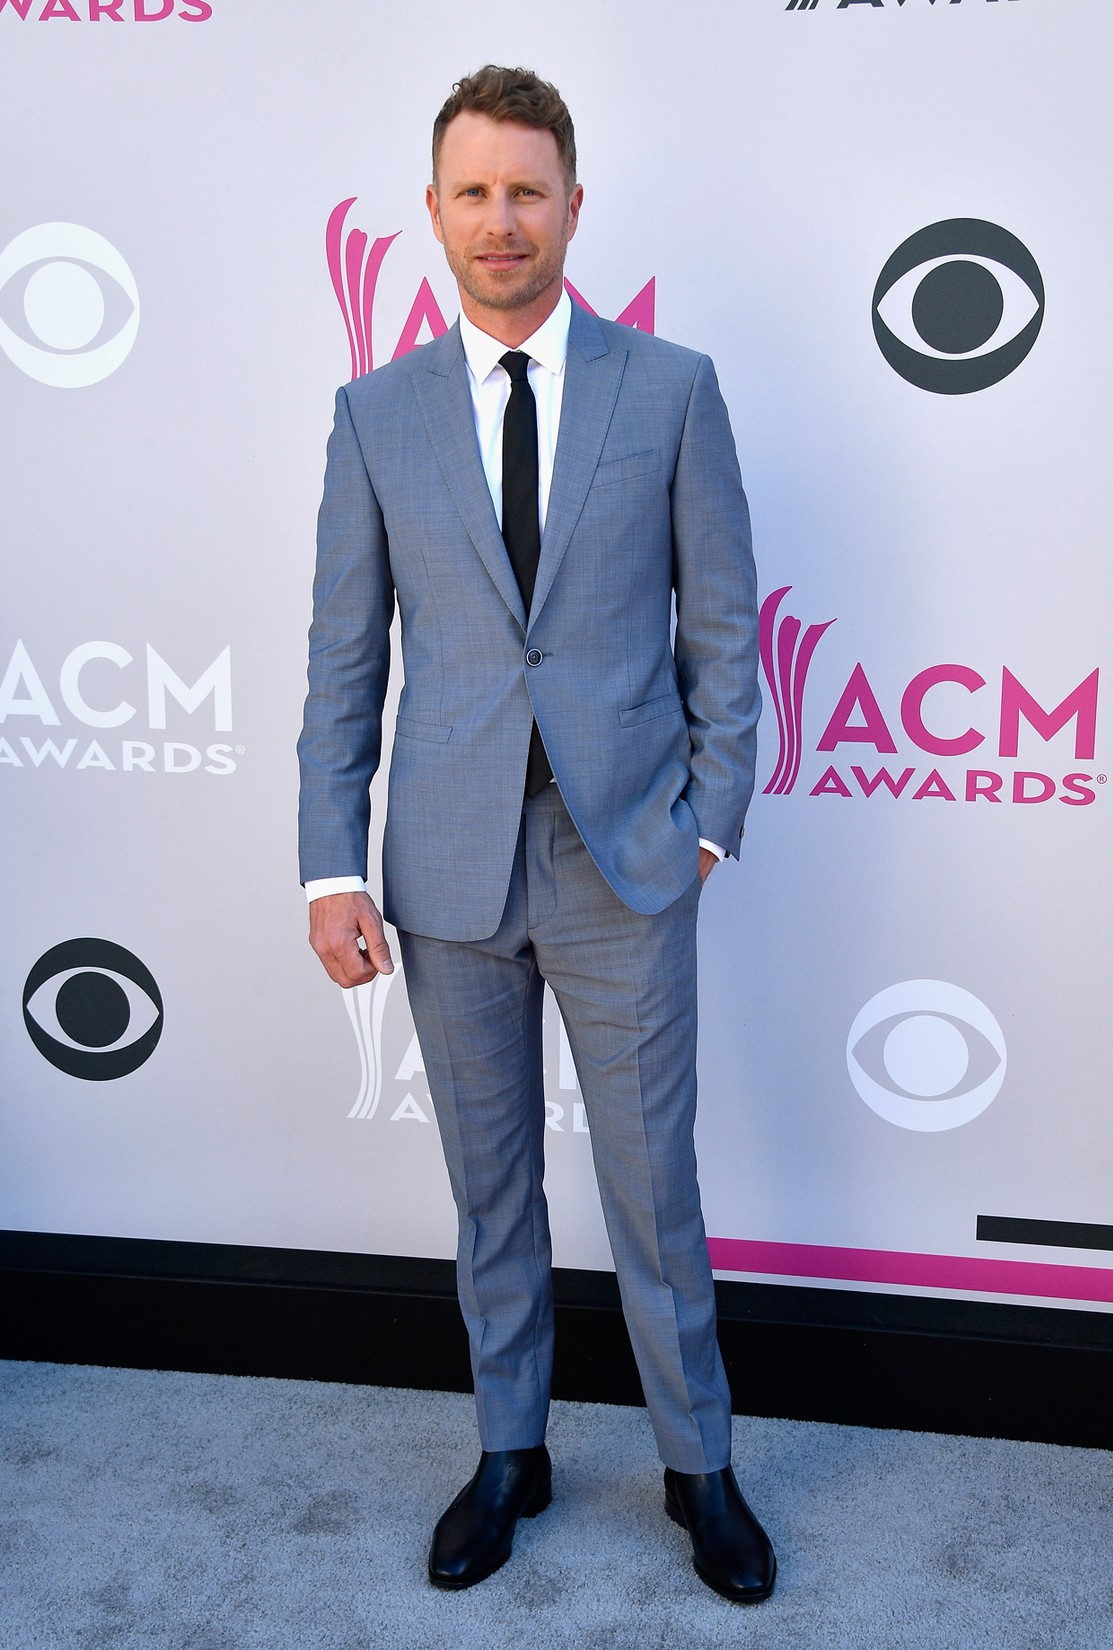 Dierks Bentley attends the 52nd Academy Of Country Music Awards at Toshiba Plaza on April 2, 2017 in Las Vegas.